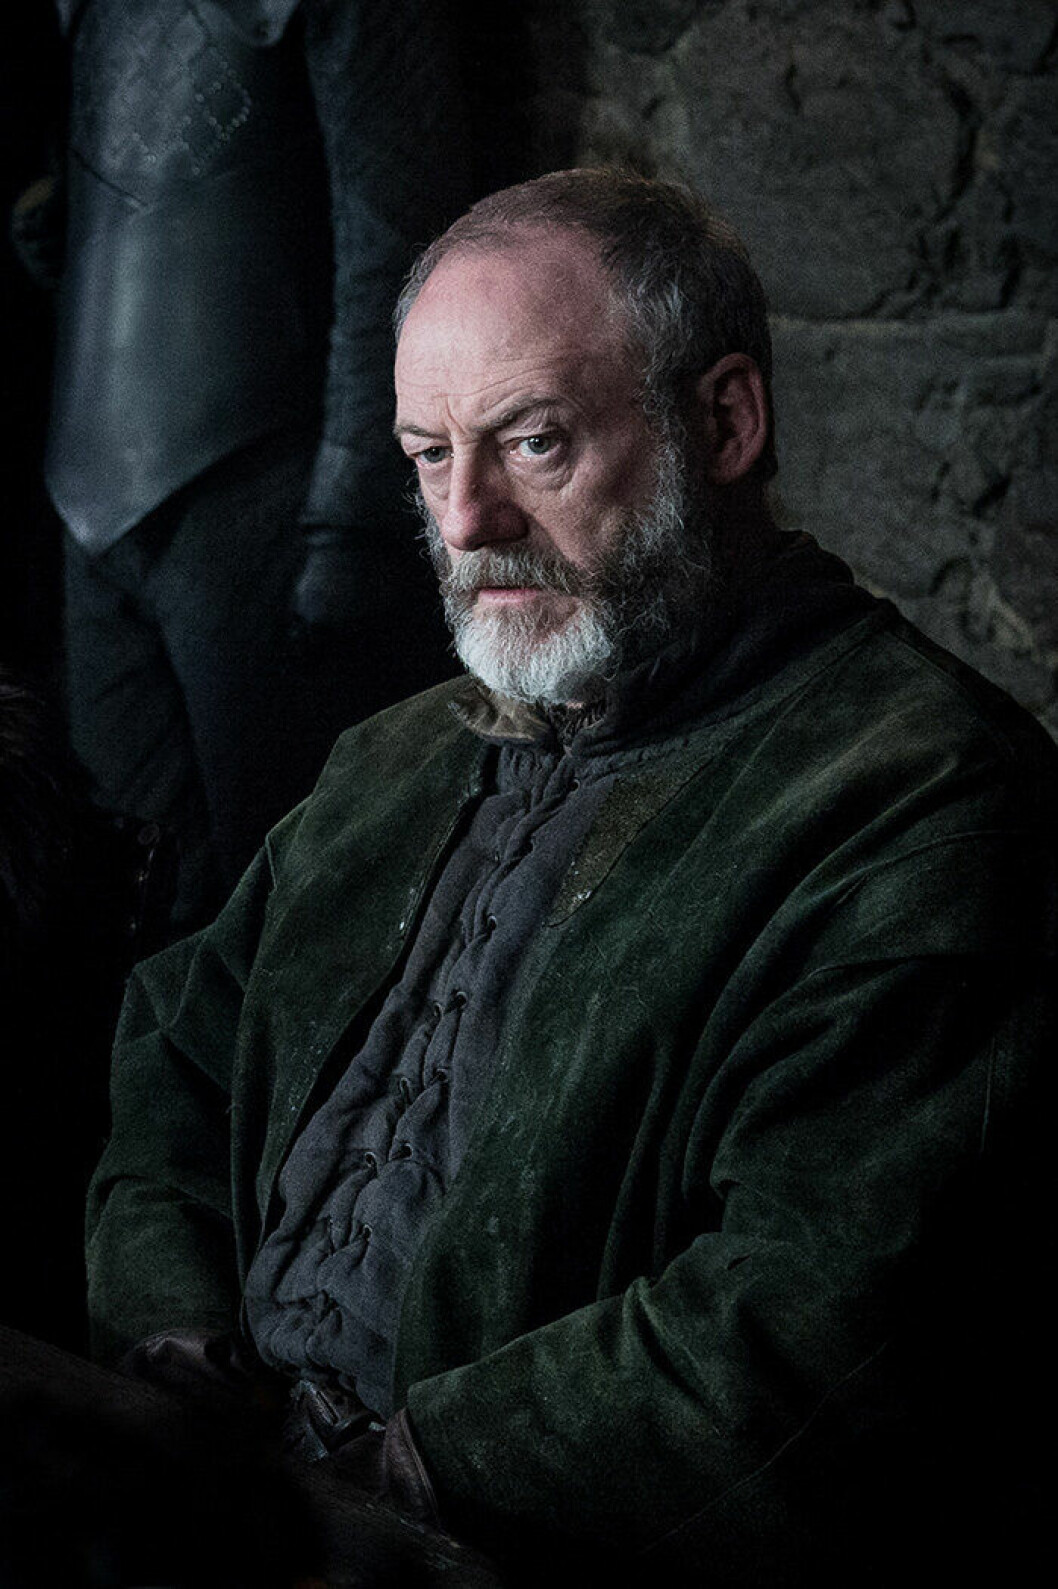 En bild på karaktären Davos Seaworth från tv-serien Game of Thrones.